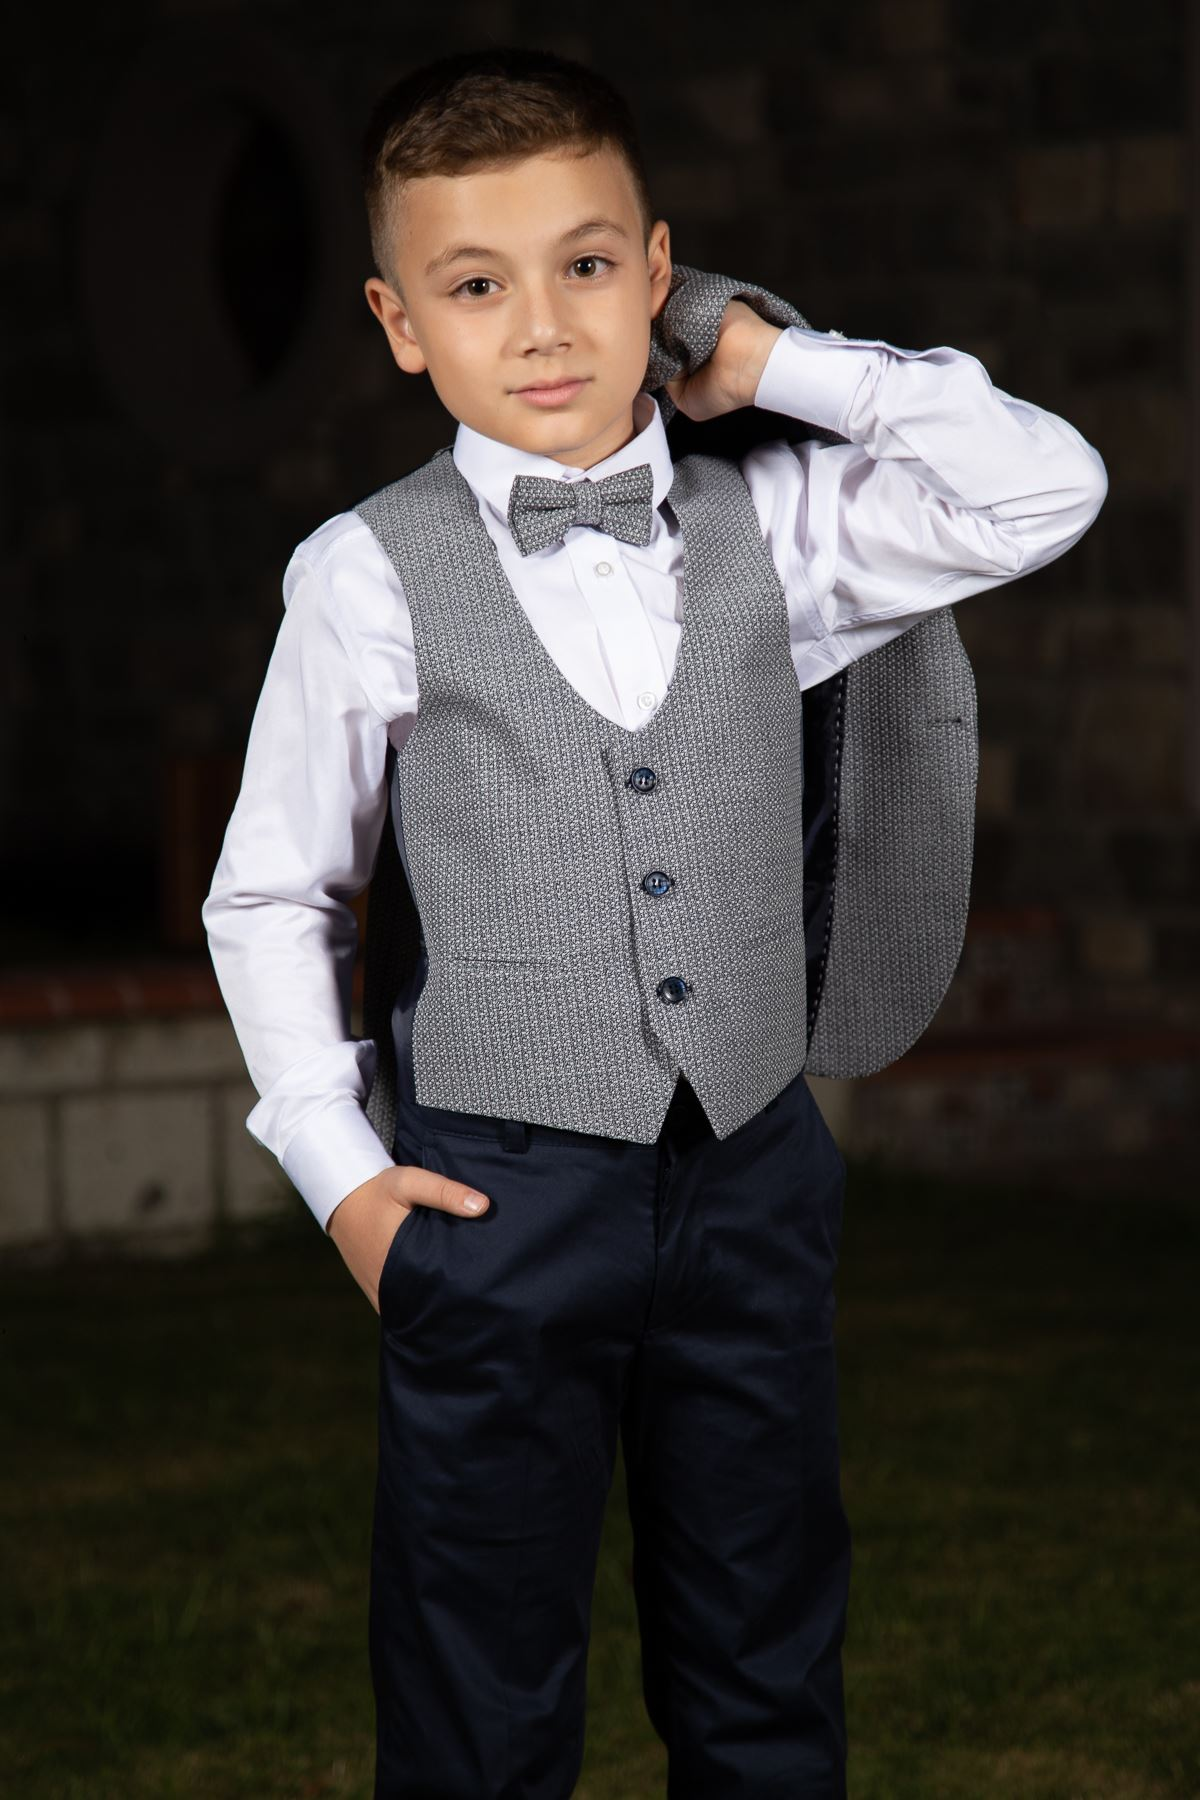 Knitted Fabric, Pocket Flap, Mono Collar, Full Set Boy Suit 148 Navy